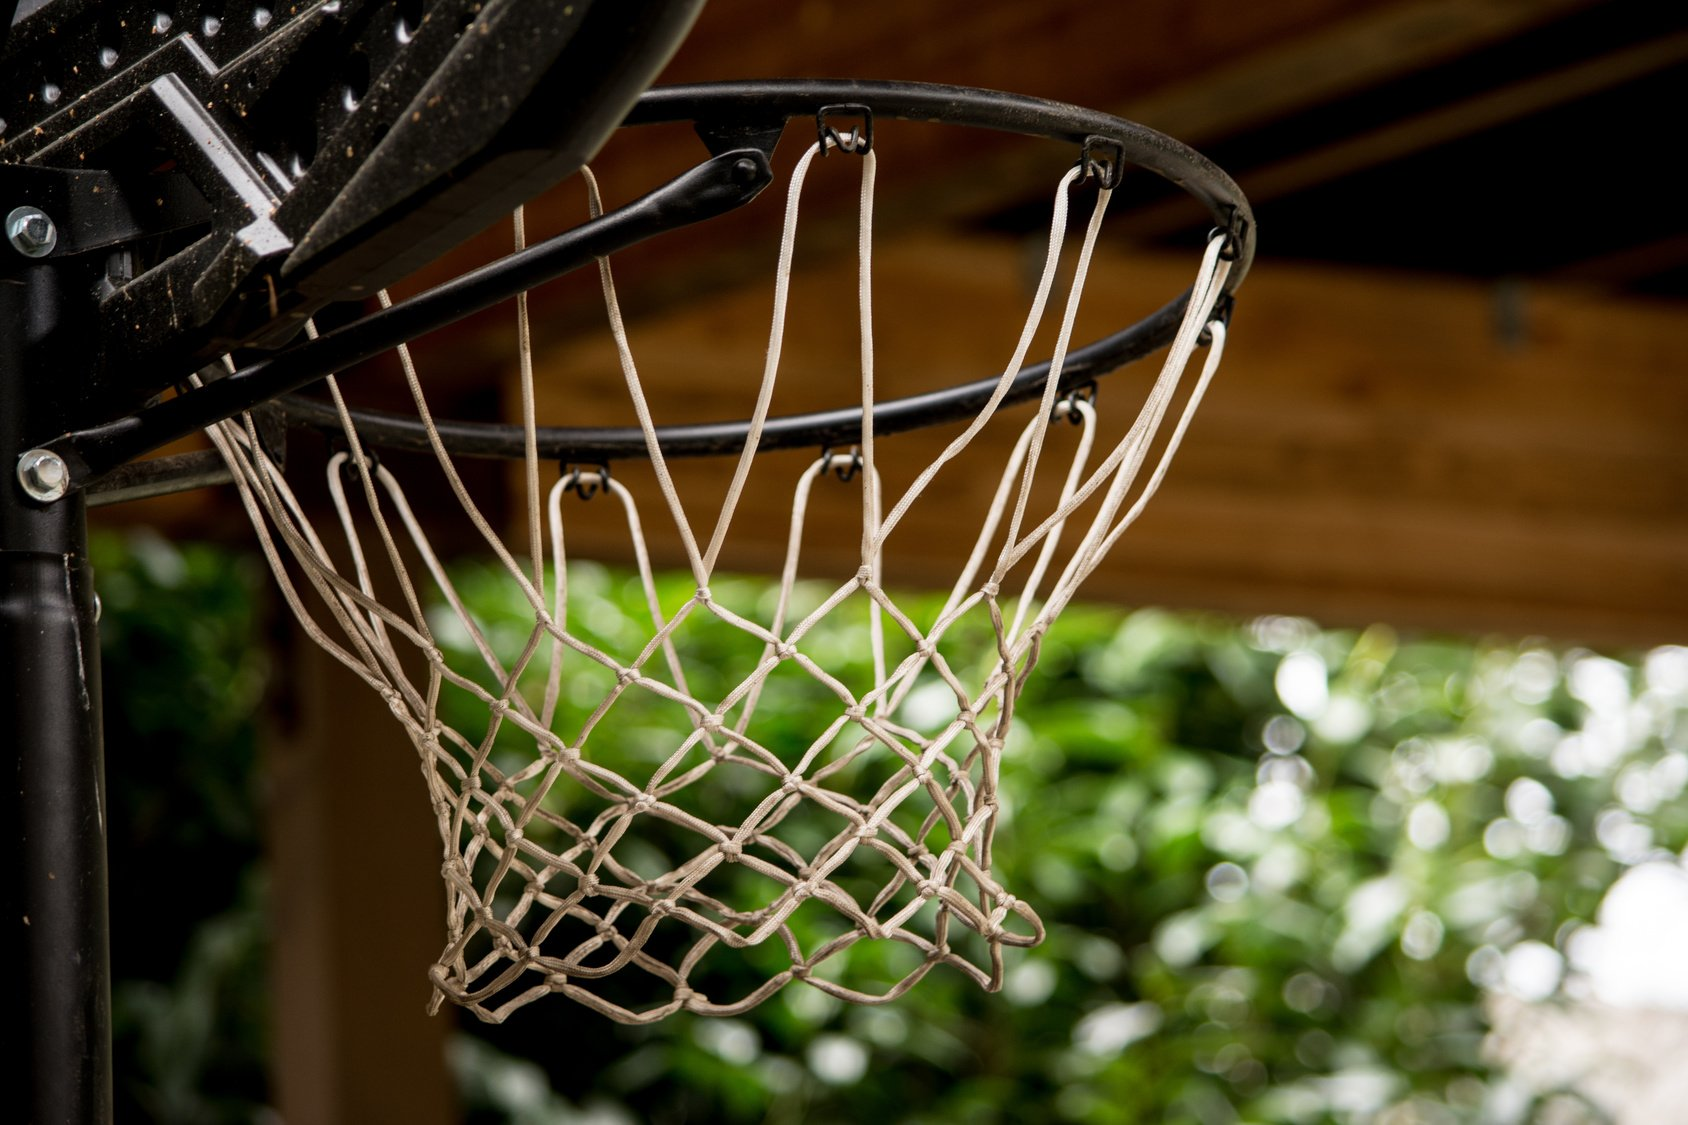 Basketball Hoop rim's net